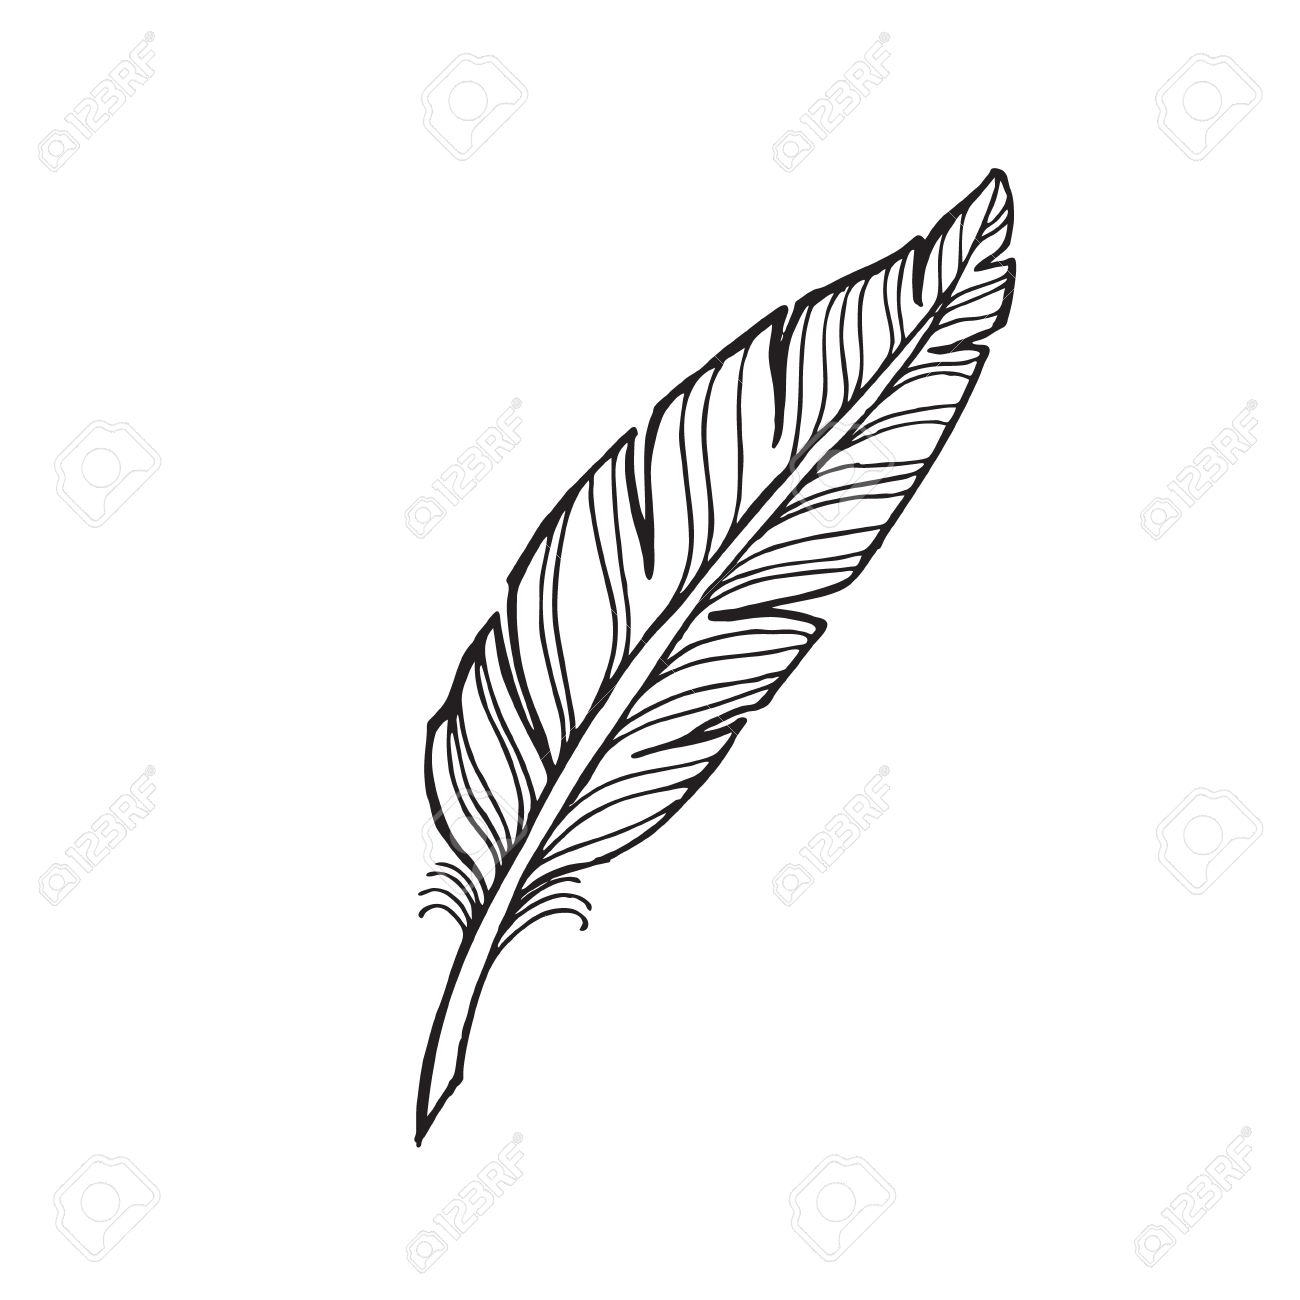 1300x1300 Black And White Feather On A White Background. Tattoo Feather